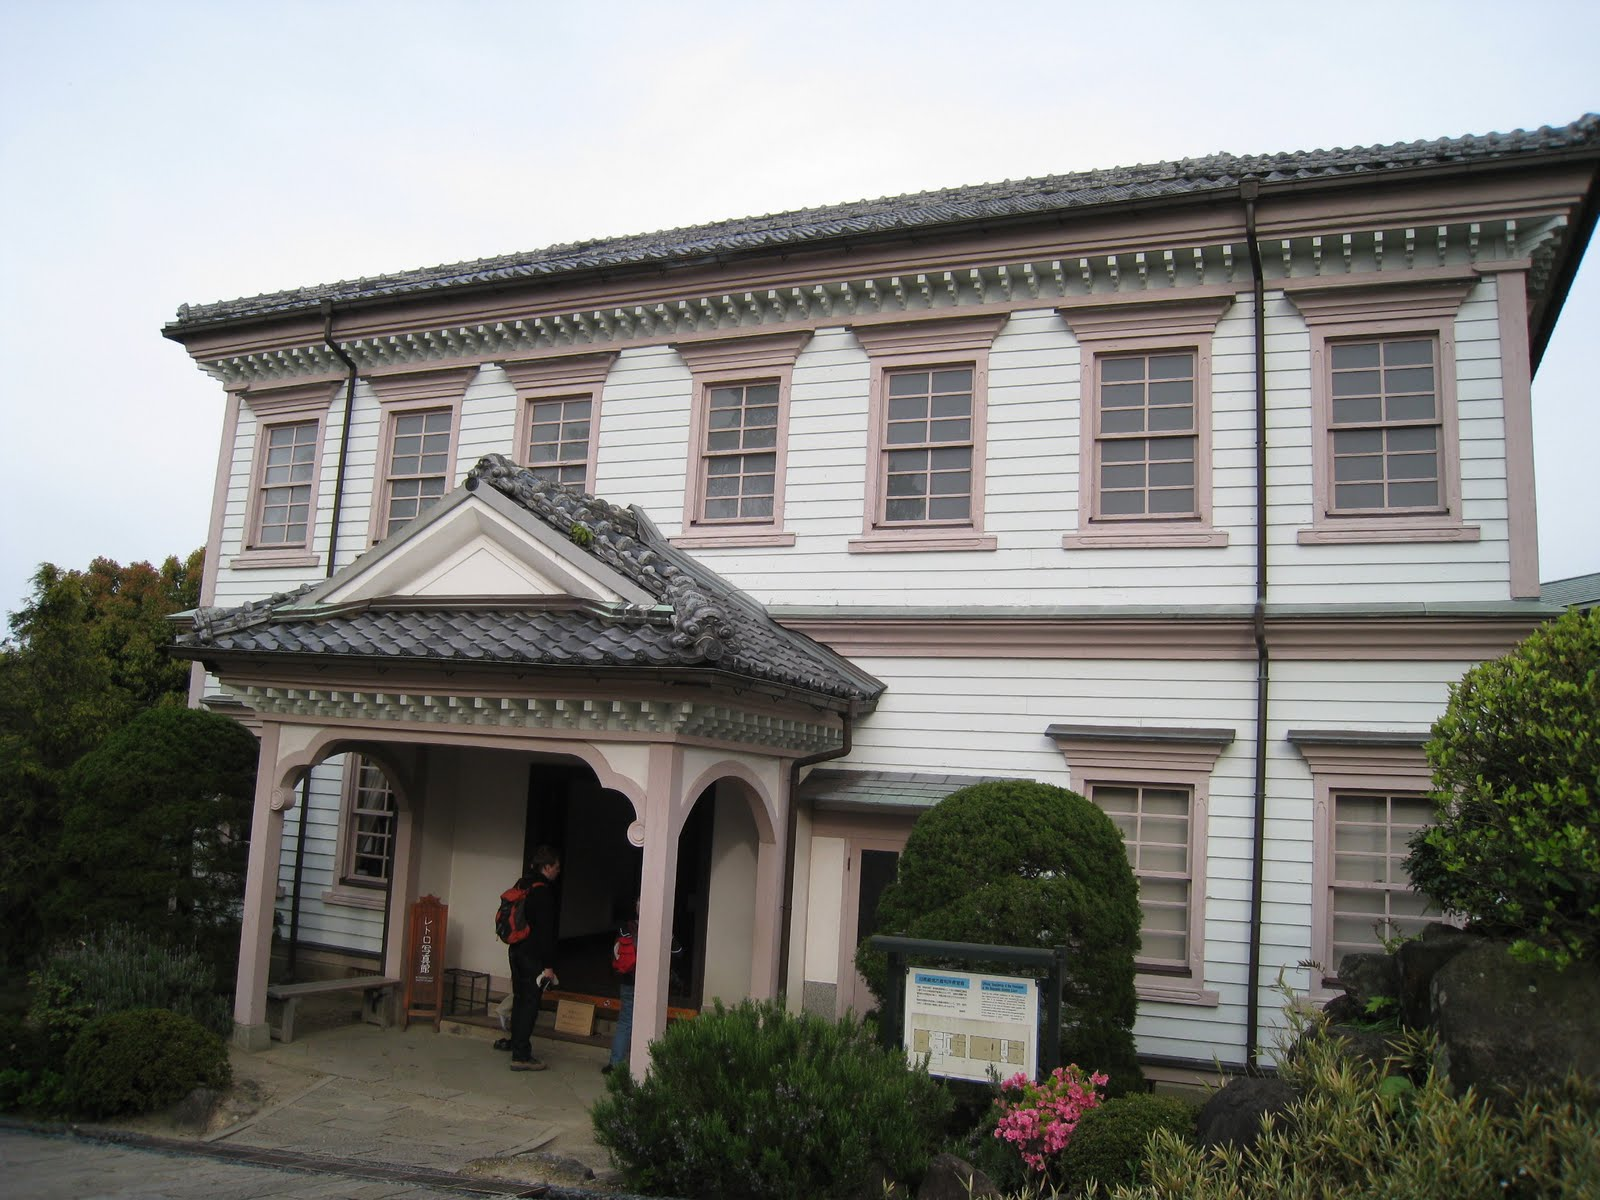 Walker House Nagasaki, By Plane, By Ship, By Bus, By Train, On Foot: Nagasaki - Day Trip ...